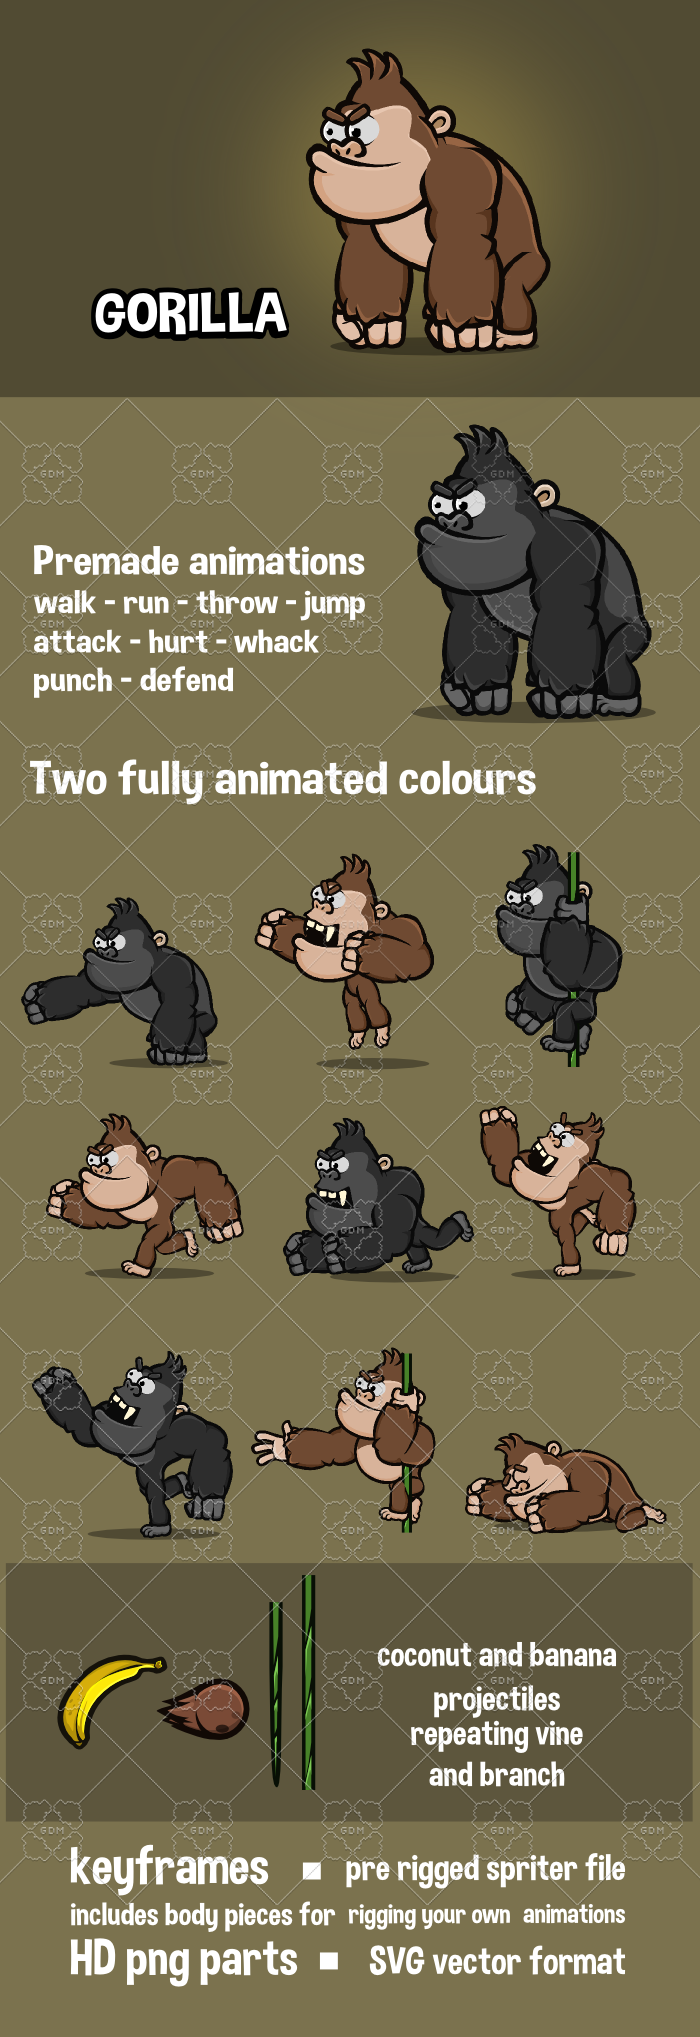 Animated gorilla